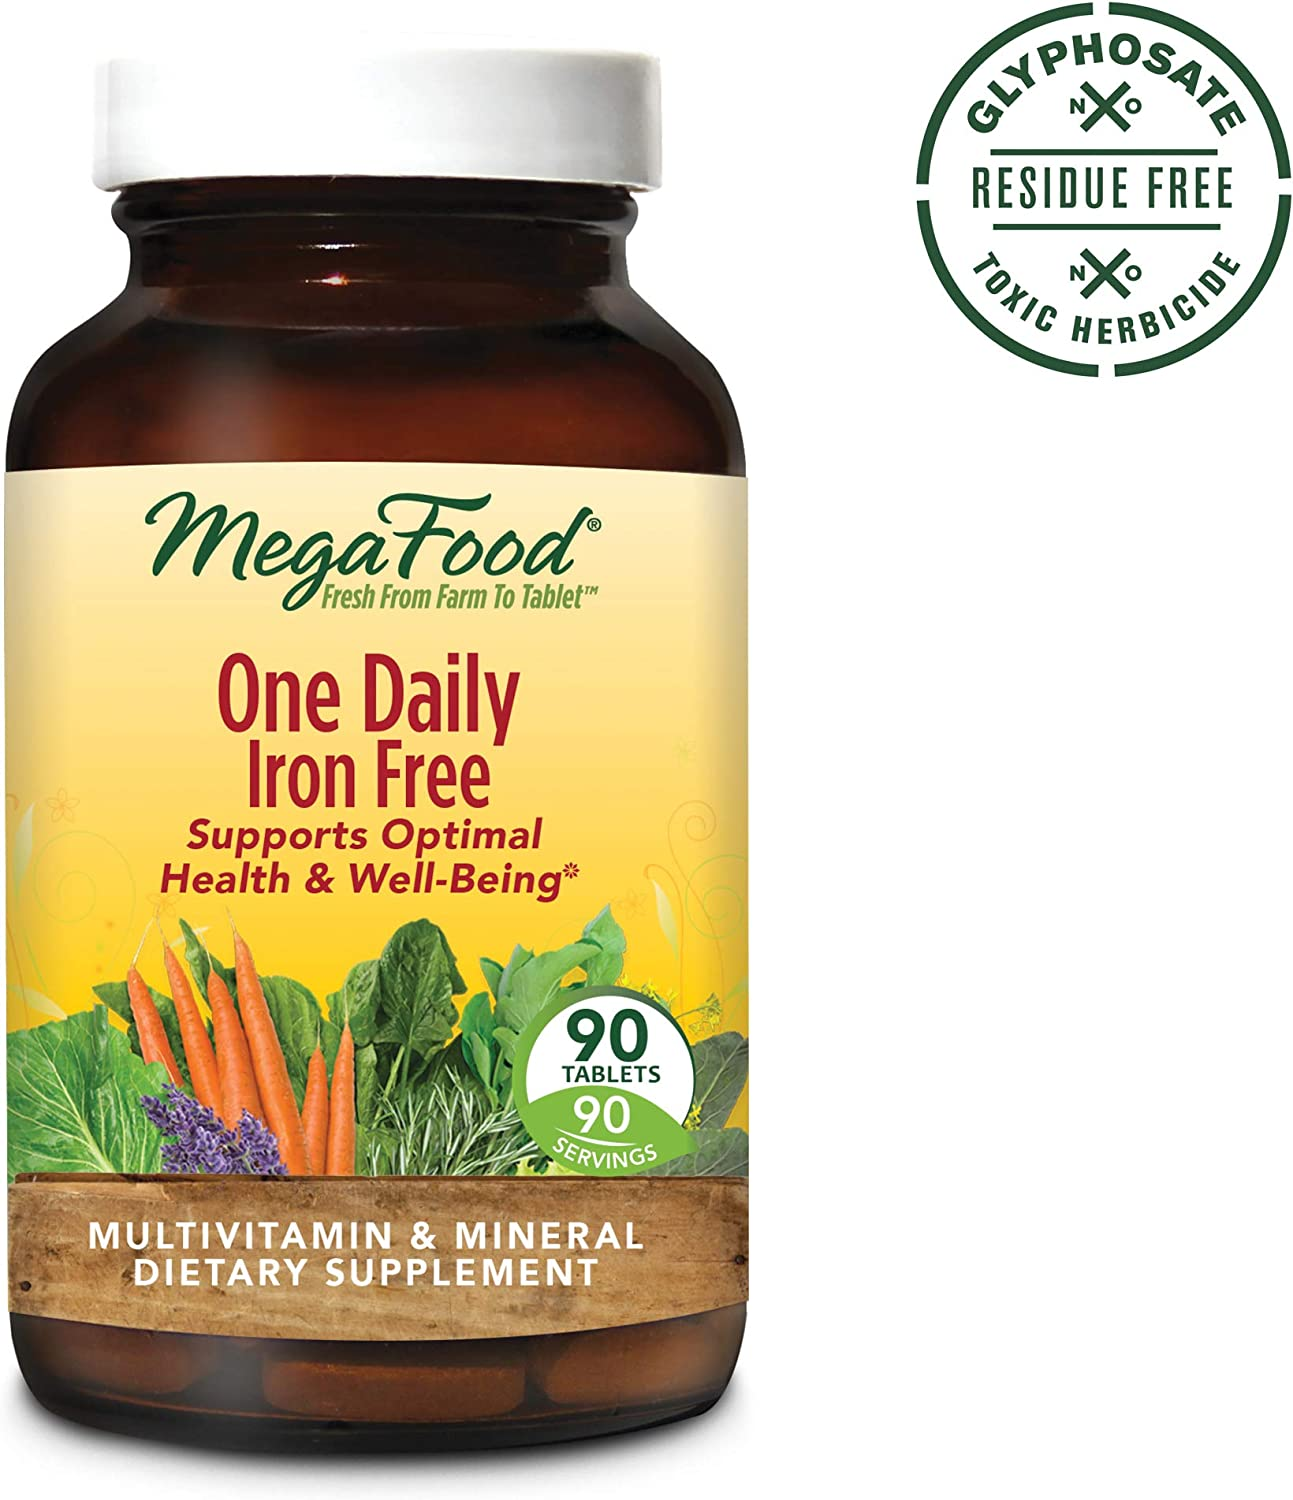 MegaFood, One Daily Iron Free, Supports Optimal Health and Wellbeing, Multivitamin and Mineral Supplement, Gluten Free, Vegetarian, 90 Tablets 90 Servings FFP